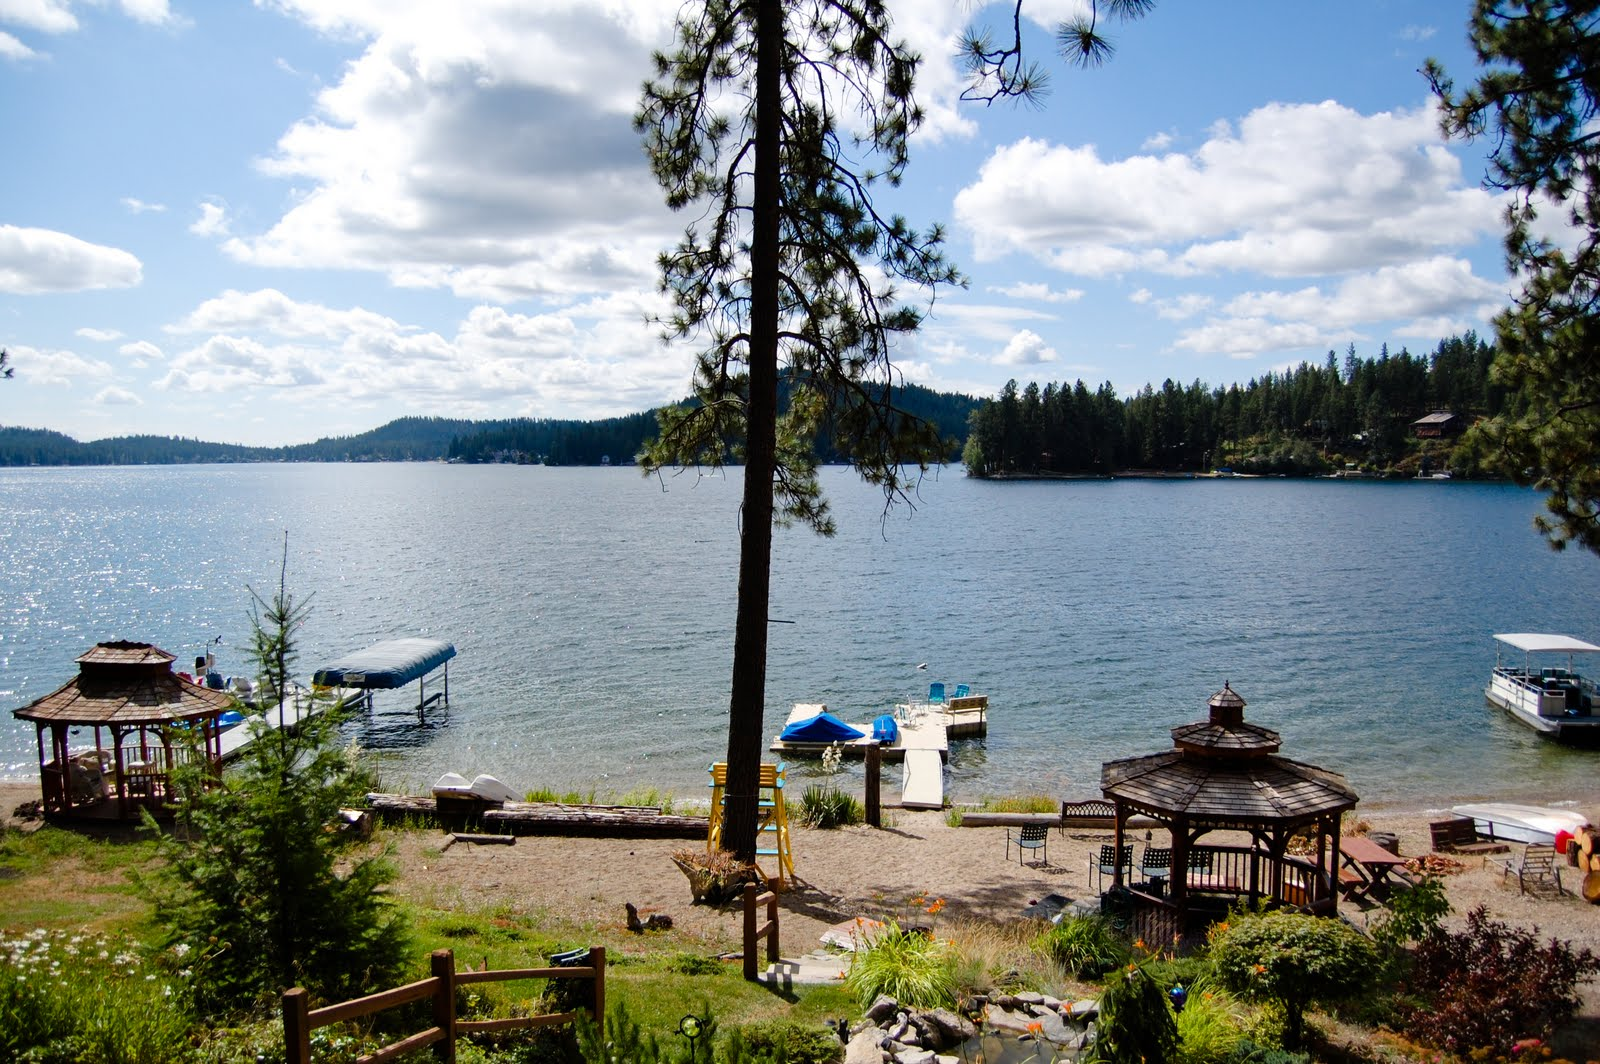 loon lake single men This feature is not available right now please try again later.